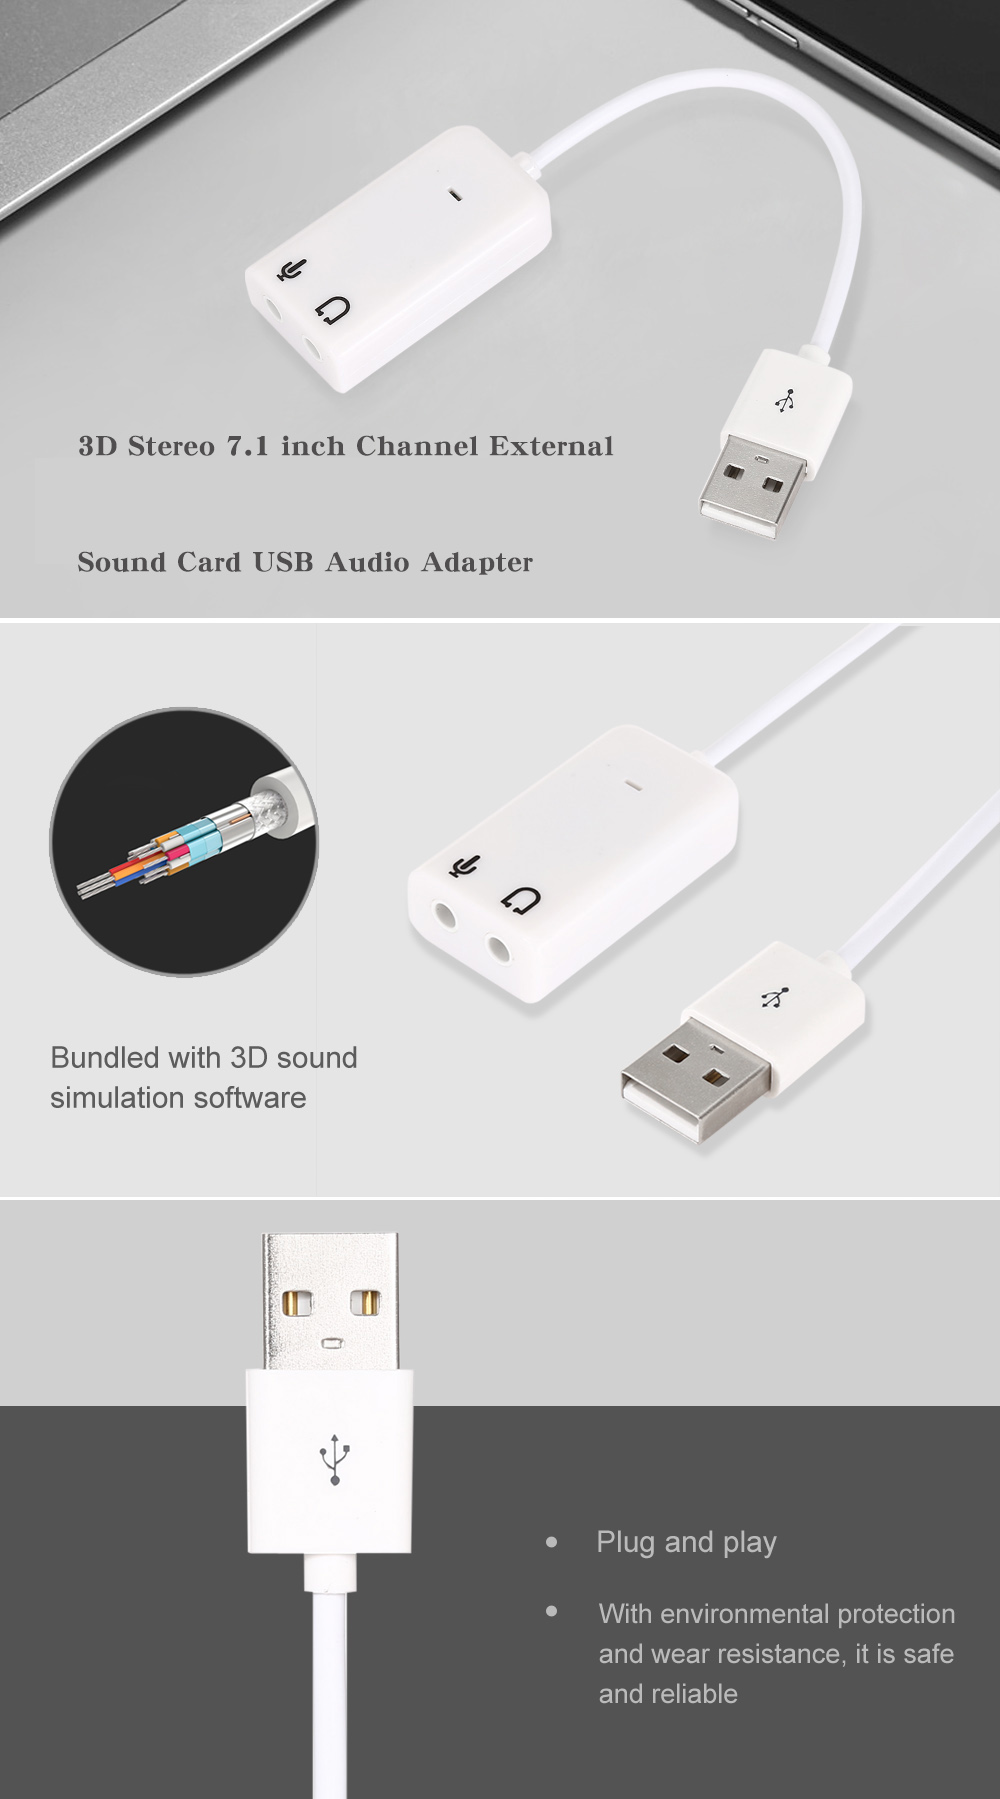 3D Stereo 7.1 inch Channel USB Audio Adapter External Sound Card for Skype Headsets